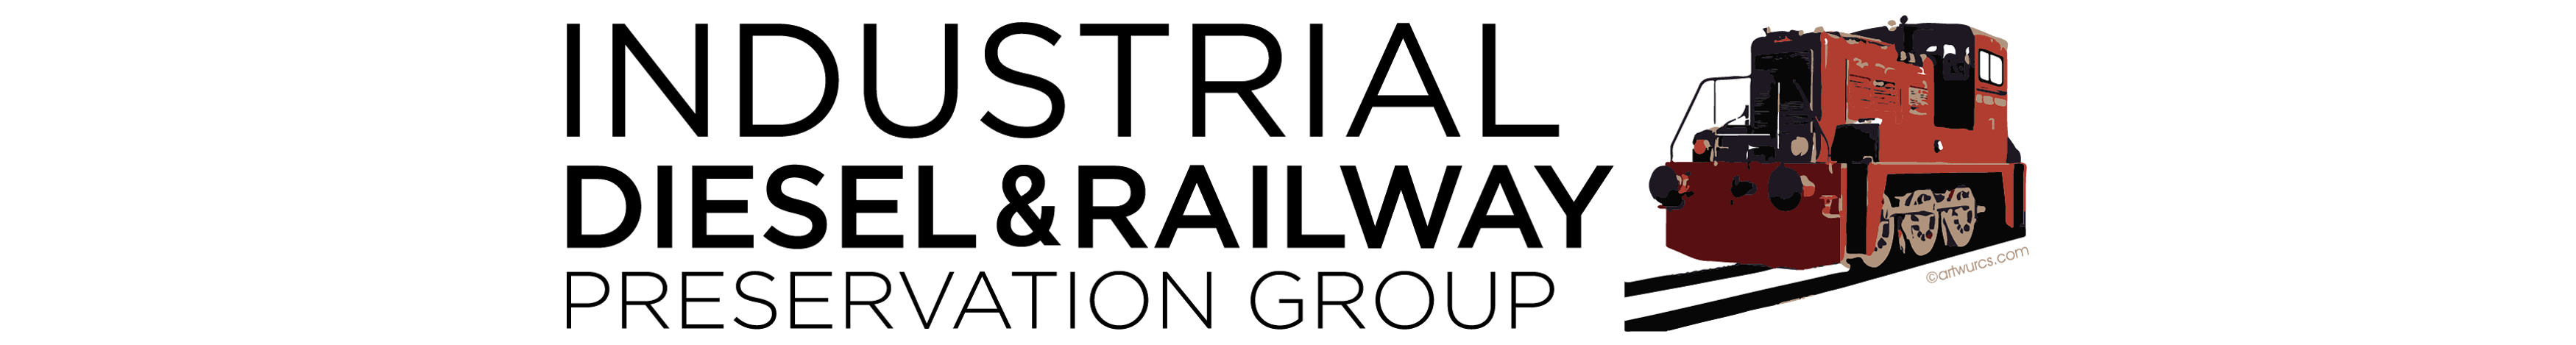 Industrial Diesel & Railway Preservation Group